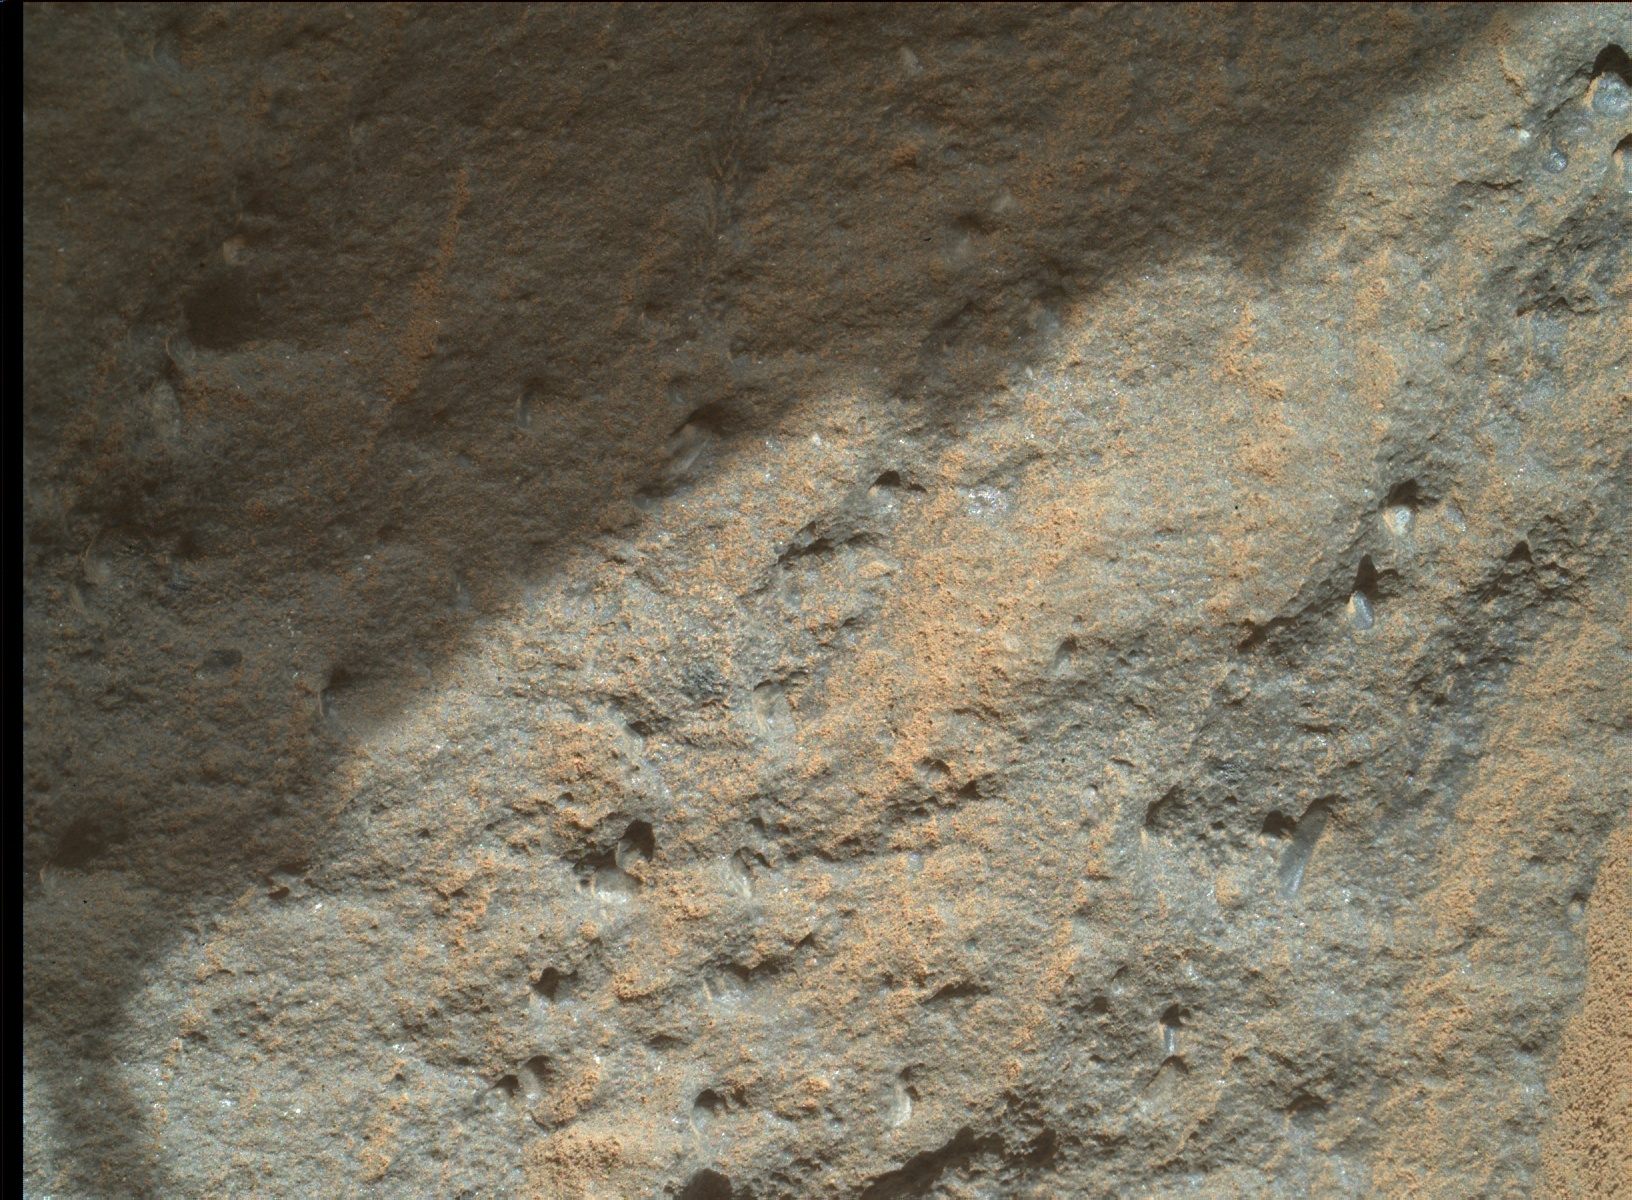 Nasa's Mars rover Curiosity acquired this image using its Mars Hand Lens Imager (MAHLI) on Sol 585